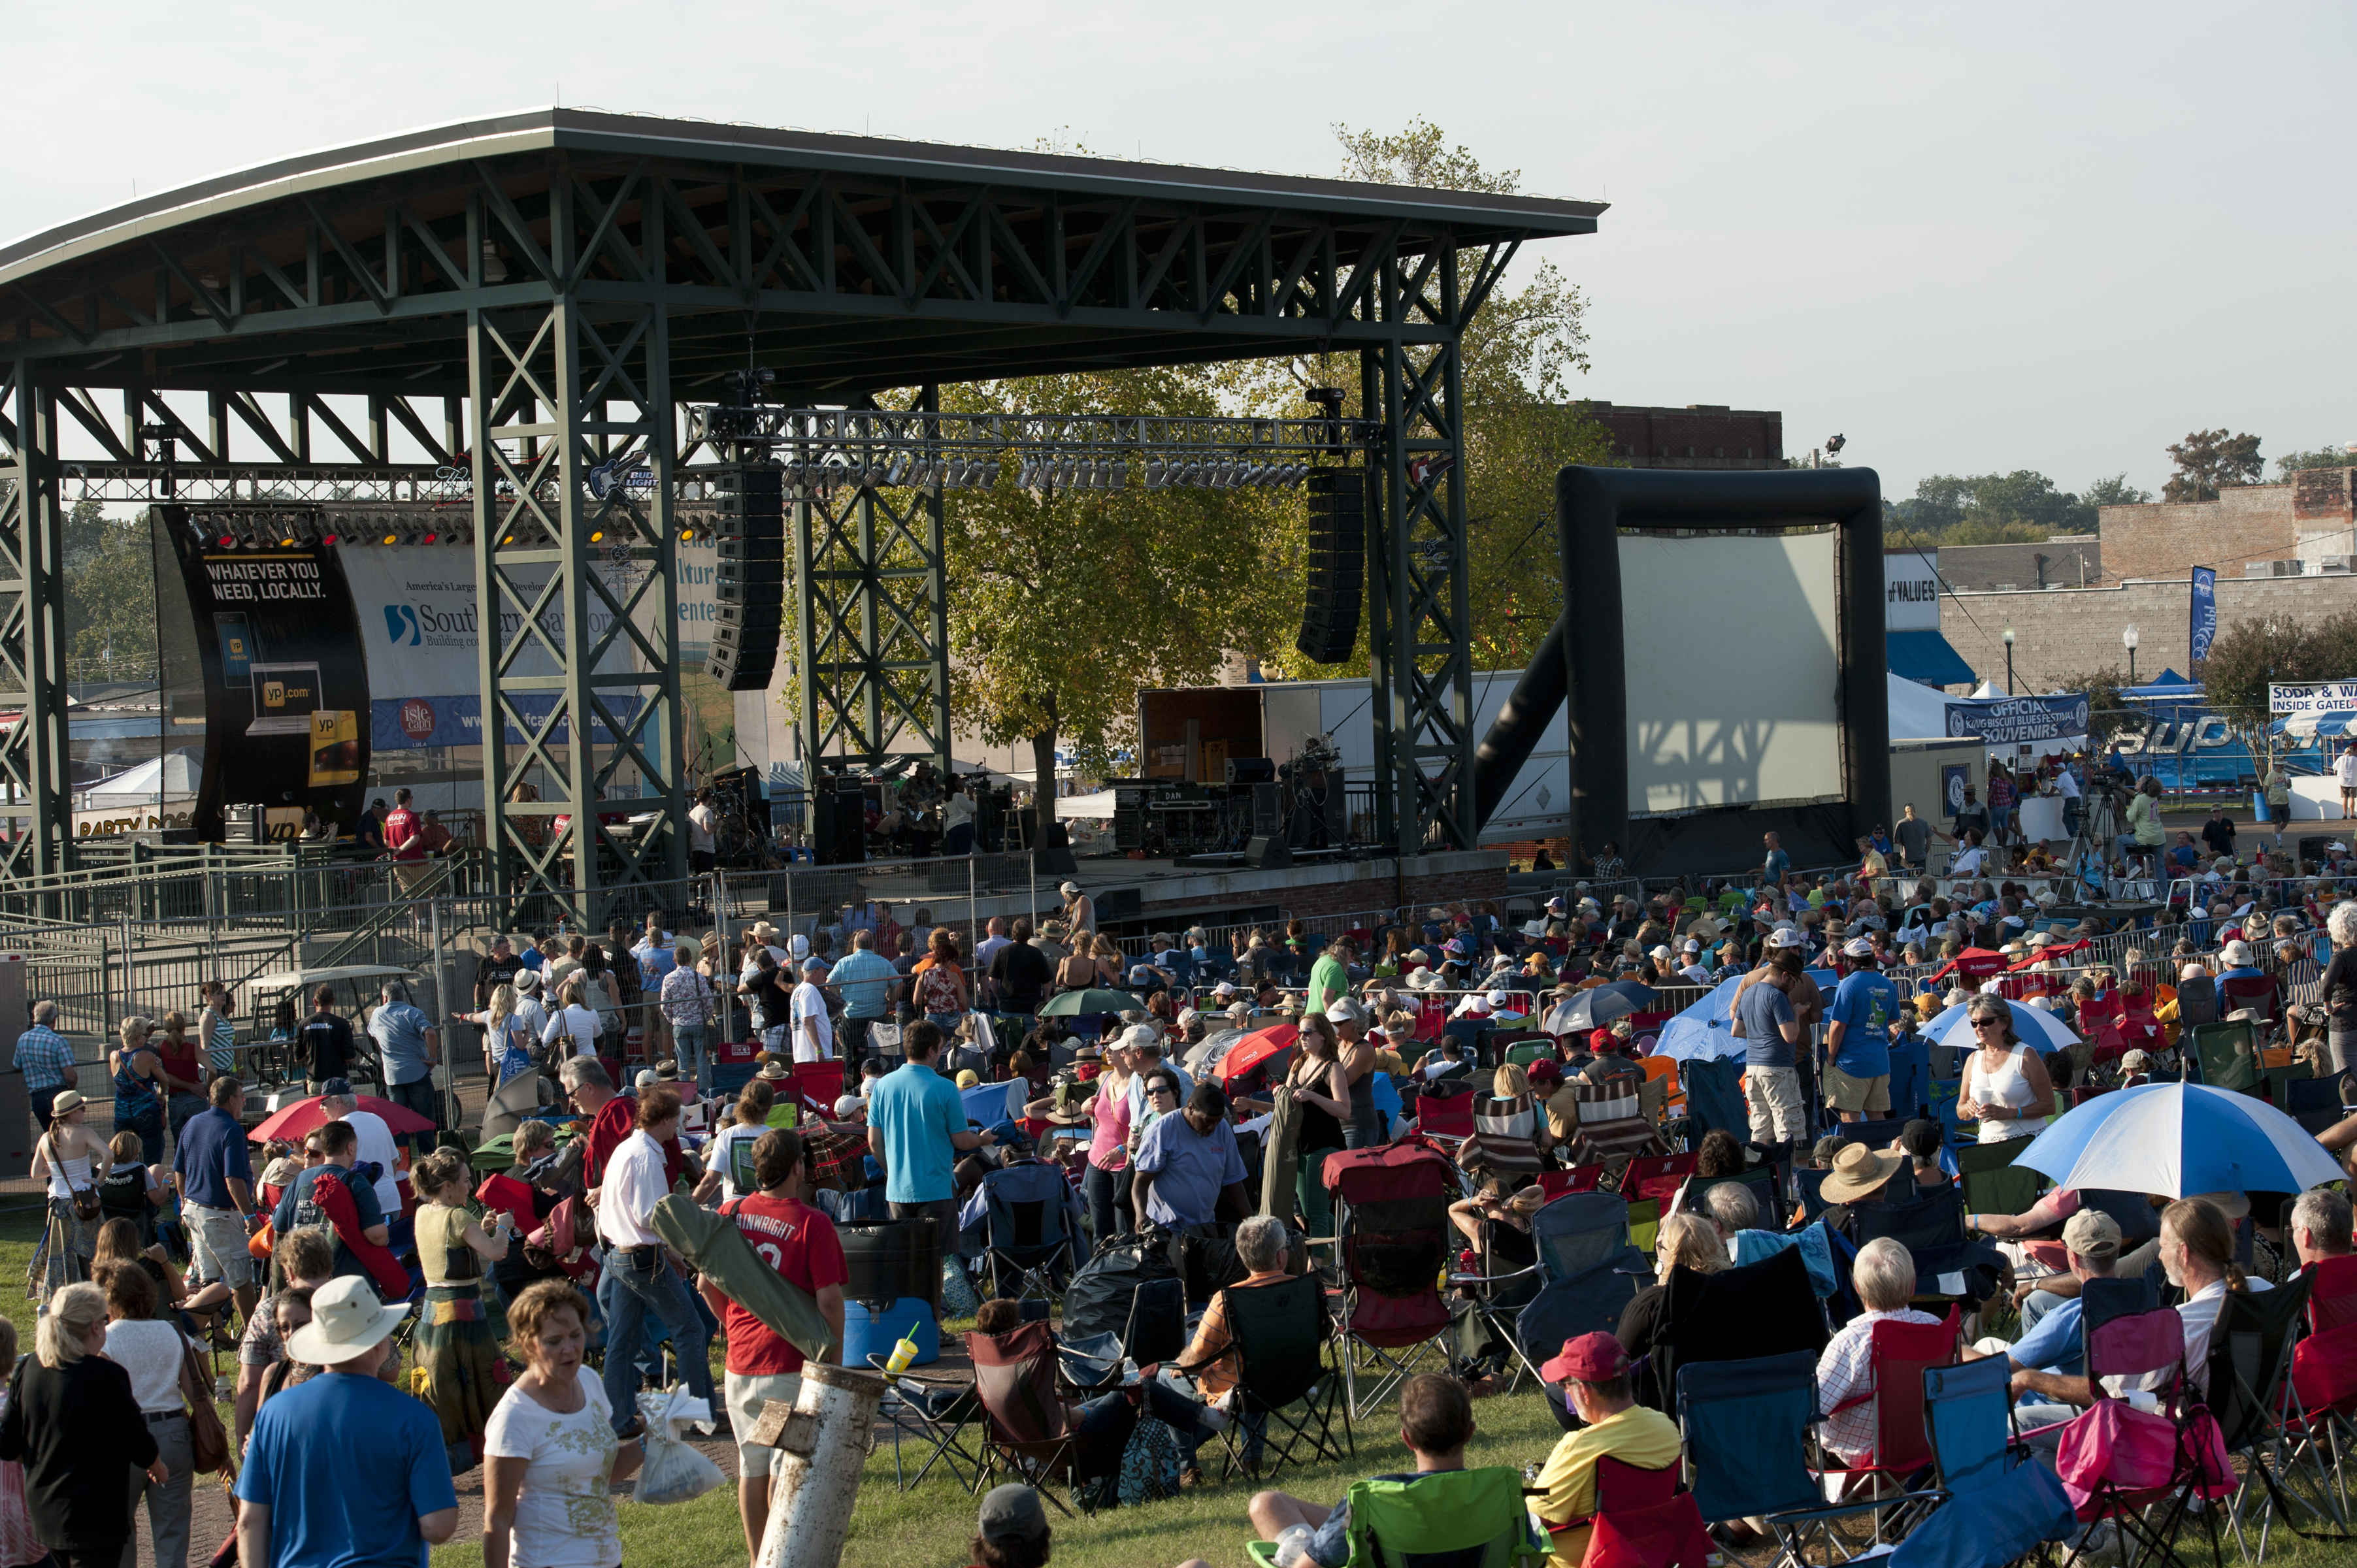 King Biscuit Blues Festival 2020.An Insider S Guide To The 30th Annual King Biscuit Blues